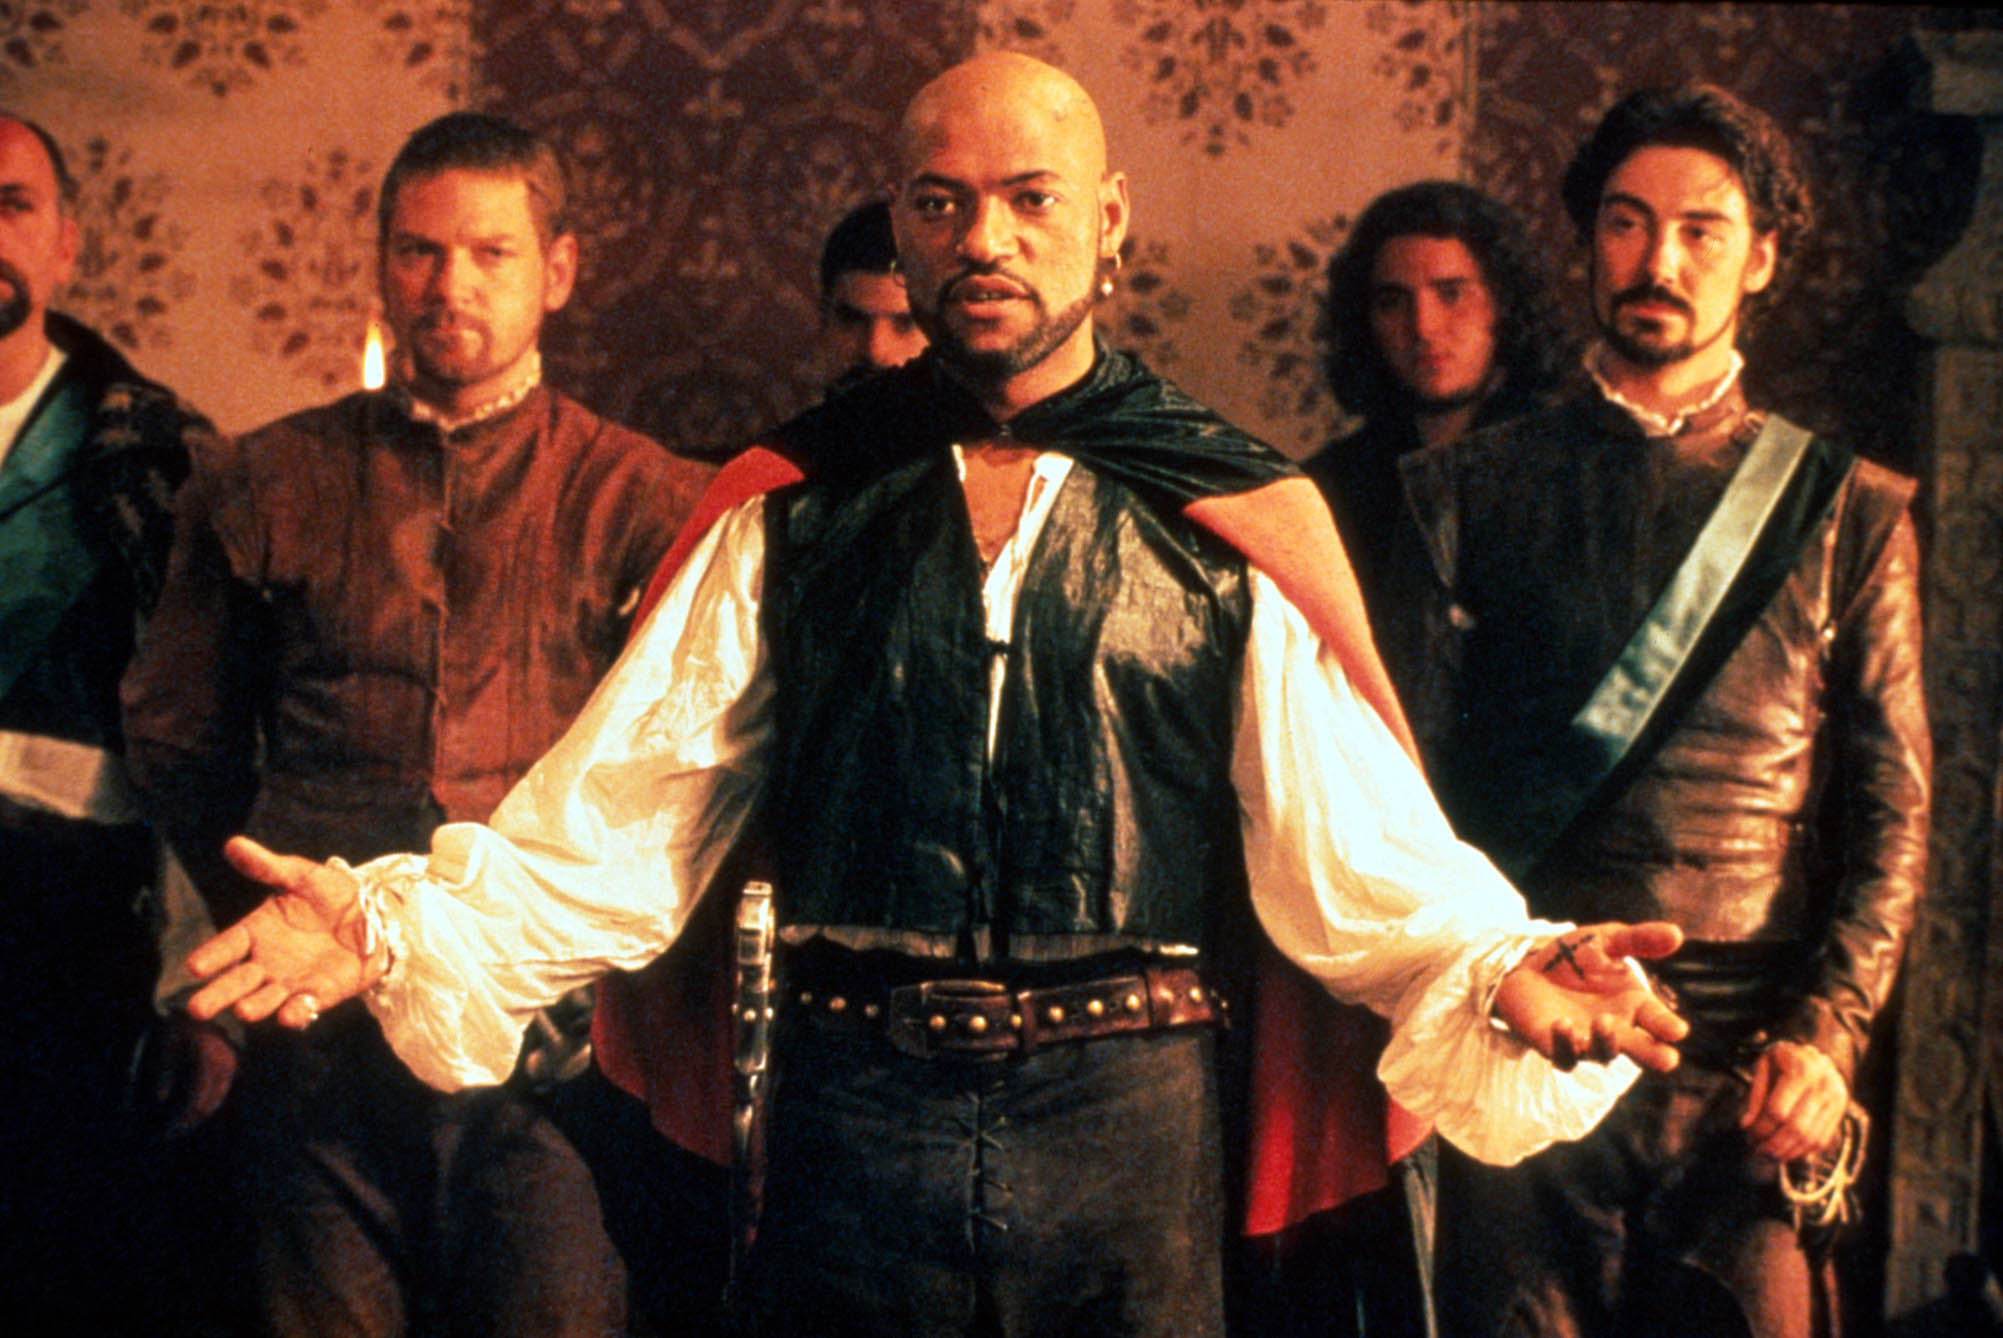 othello shakespeare and saxs film connection Marketing syllabuspdf - free ebook download print, film, radio and television b kyd's spanish tragedy shakespeare's sonnets 18,29,30,33, ,60.